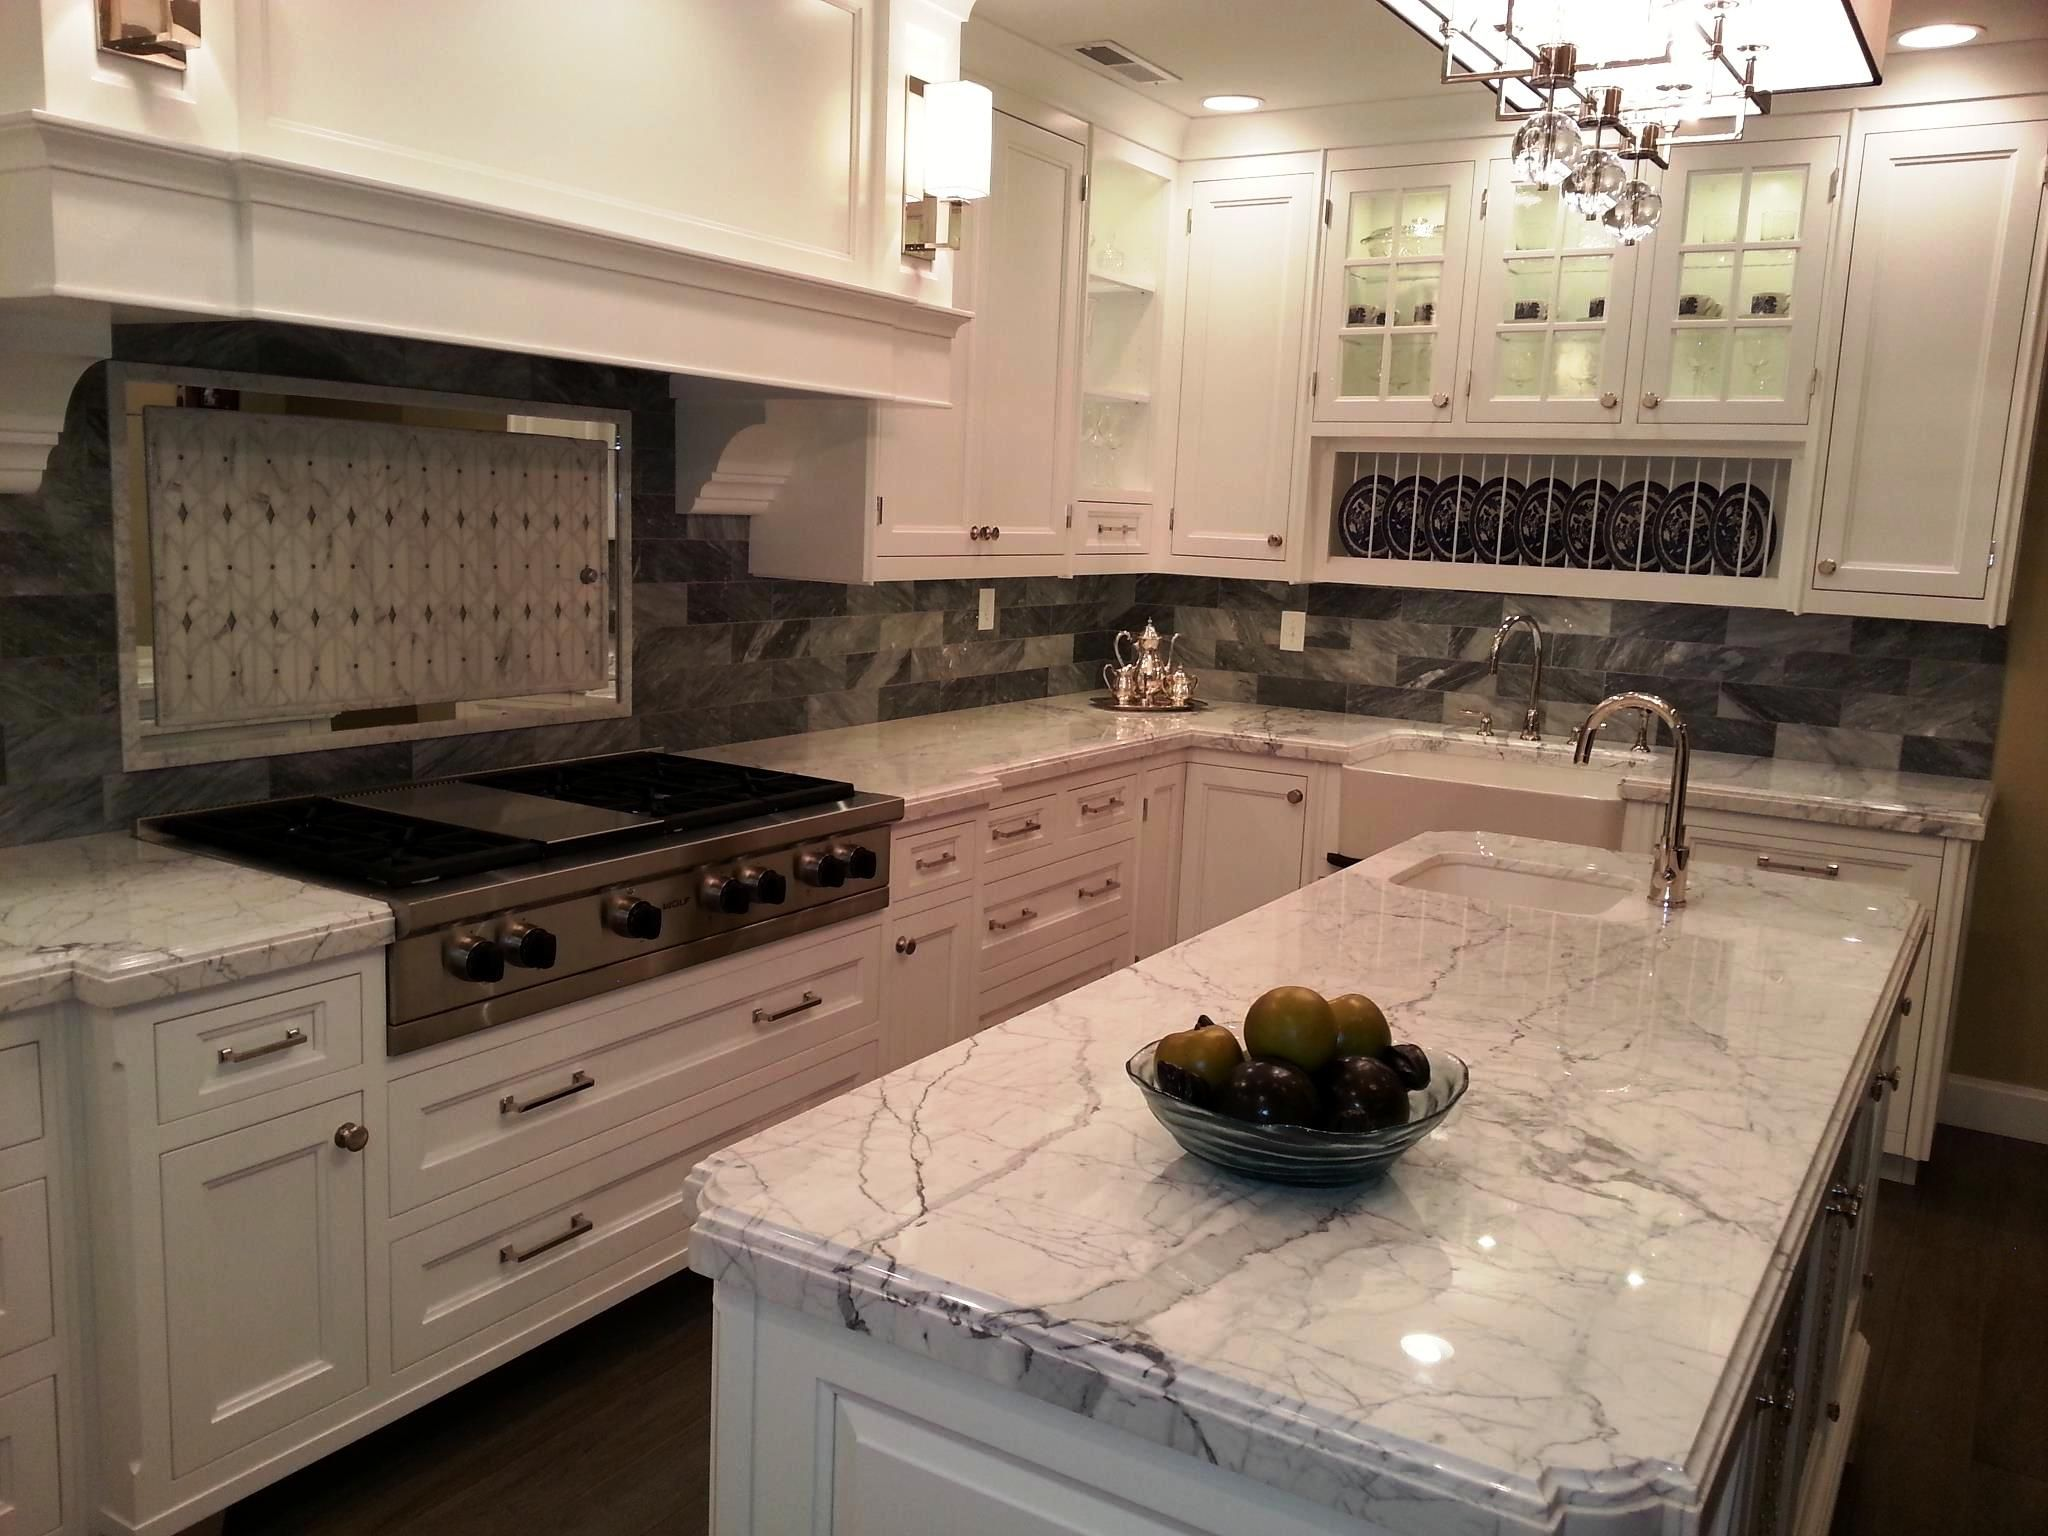 Good Kitchen Counter Decor Ideas Countertop With White Cabinets Inside Granite Colors